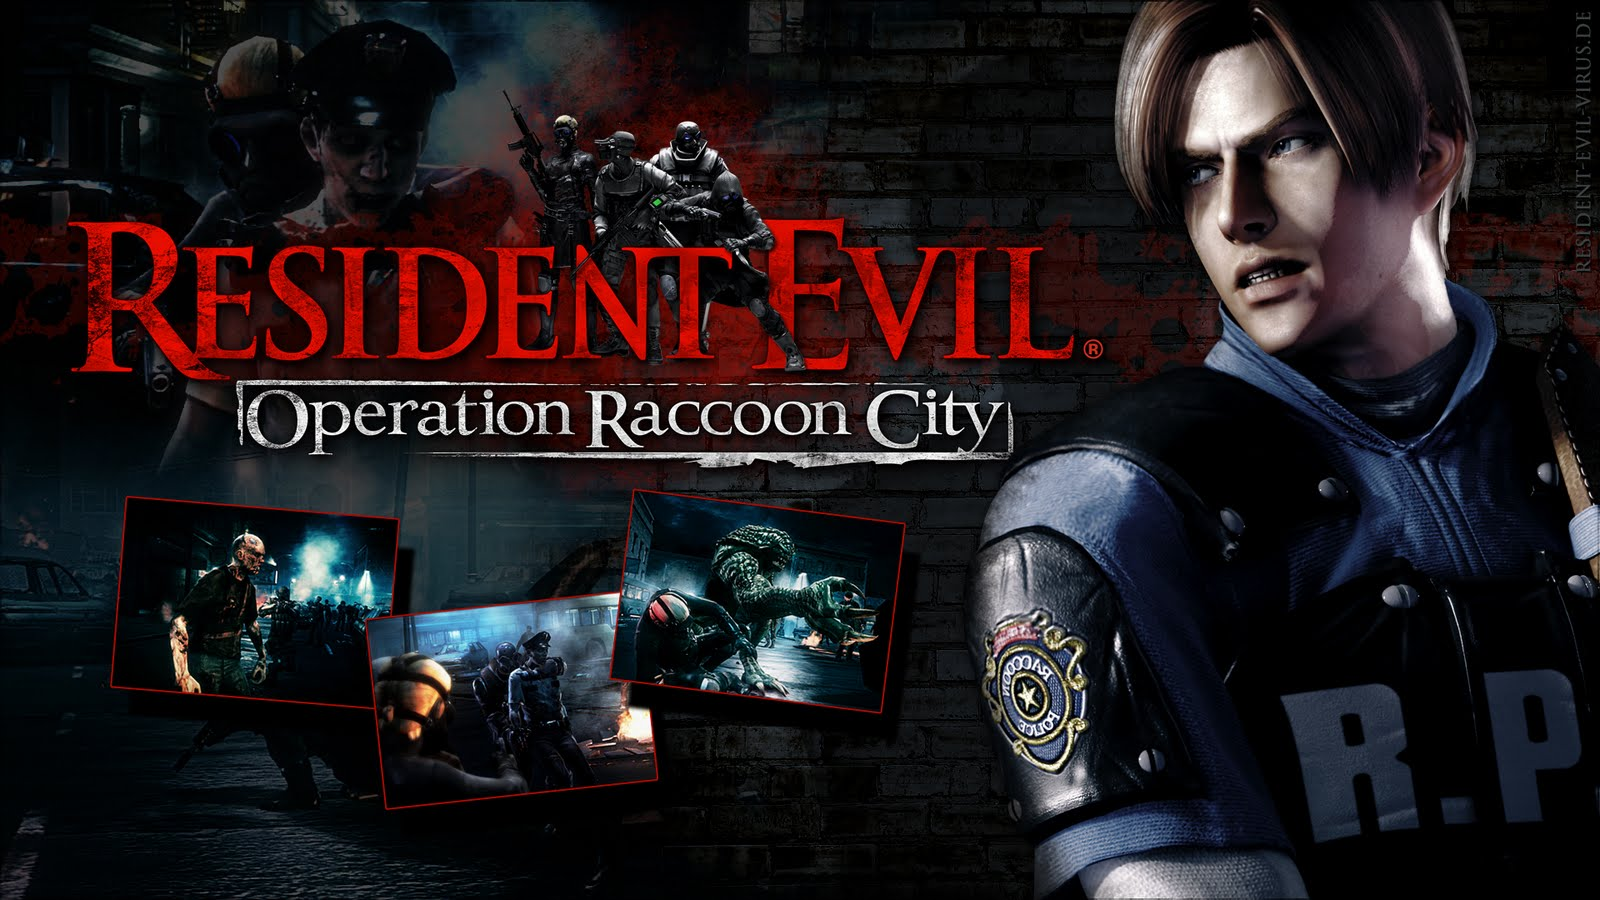 Free Resident Evil Operation Raccoon City Wallpapers - resident evil operation raccoon city wallpapers